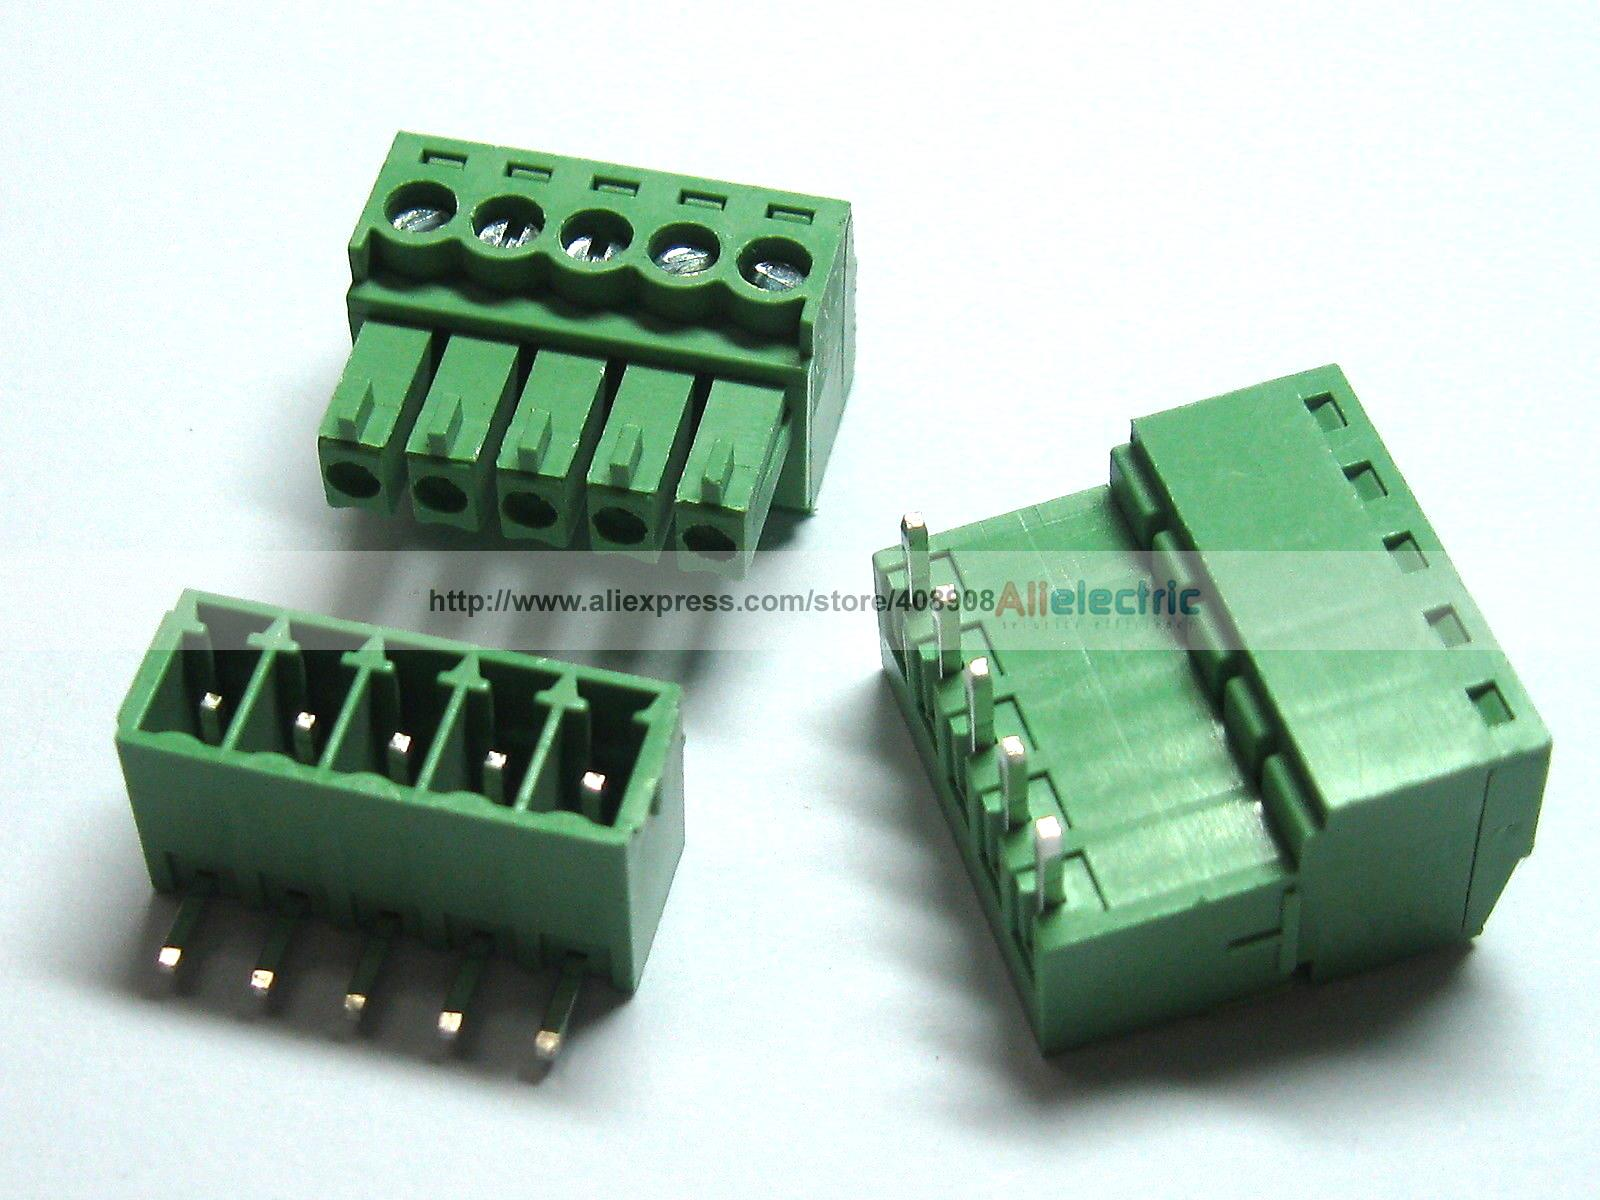 где купить 200 Pcs/lot Screw Terminal Block Connector 3.5mm Angle 5 Pin Green Pluggable Type дешево